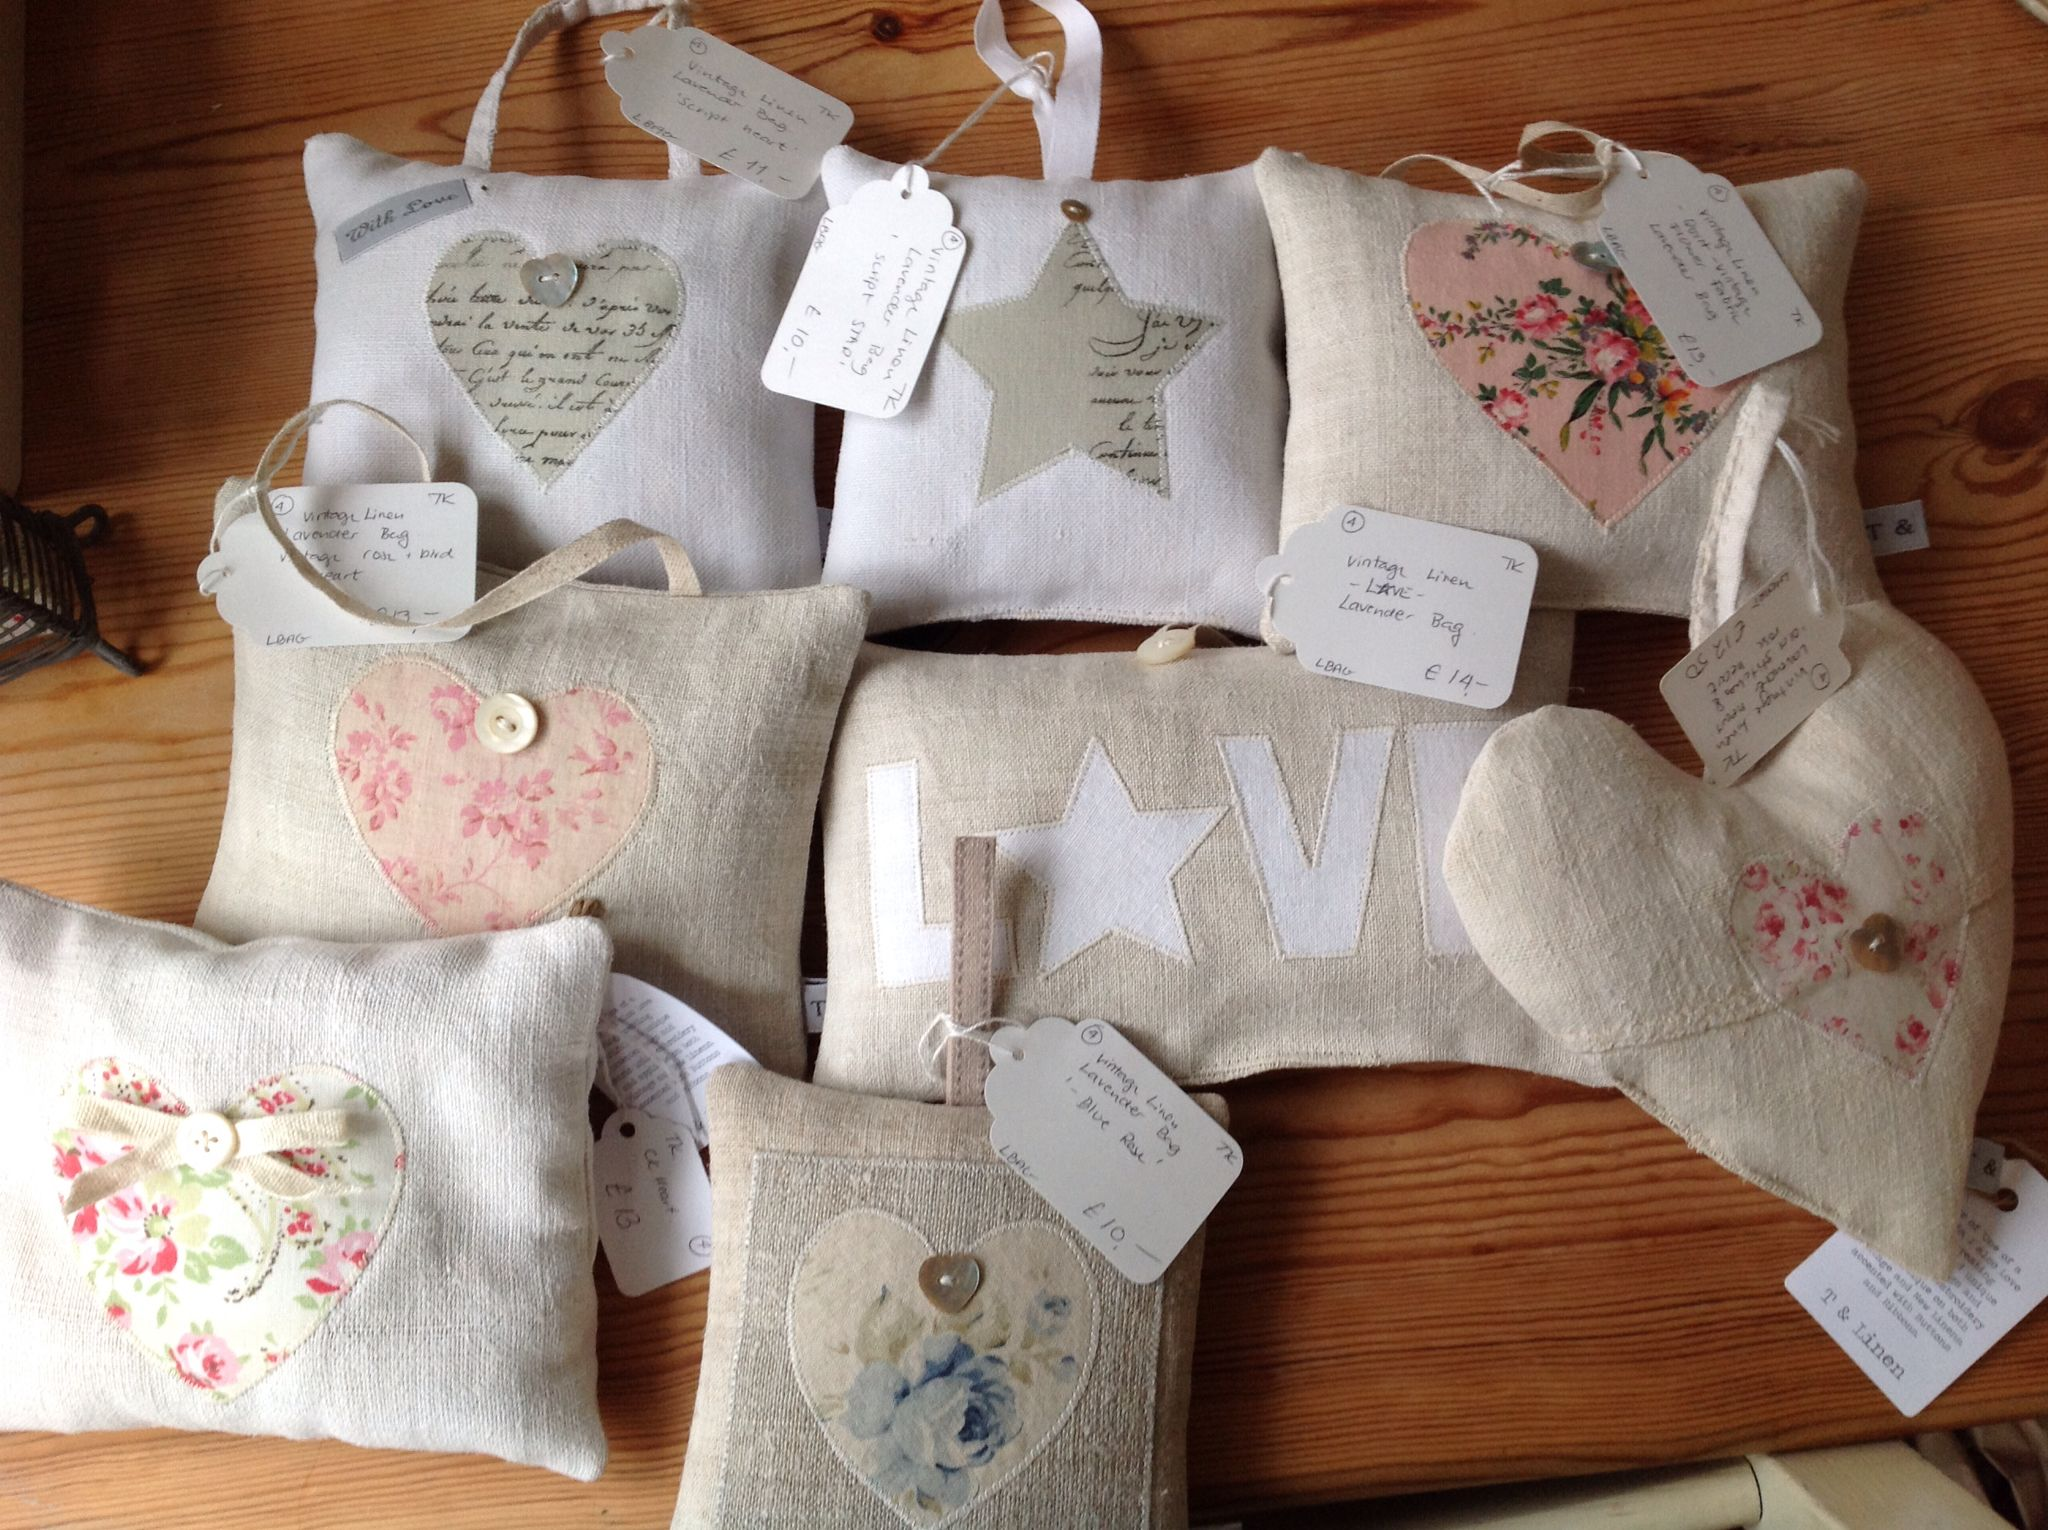 Lavender hearts and bags by me.